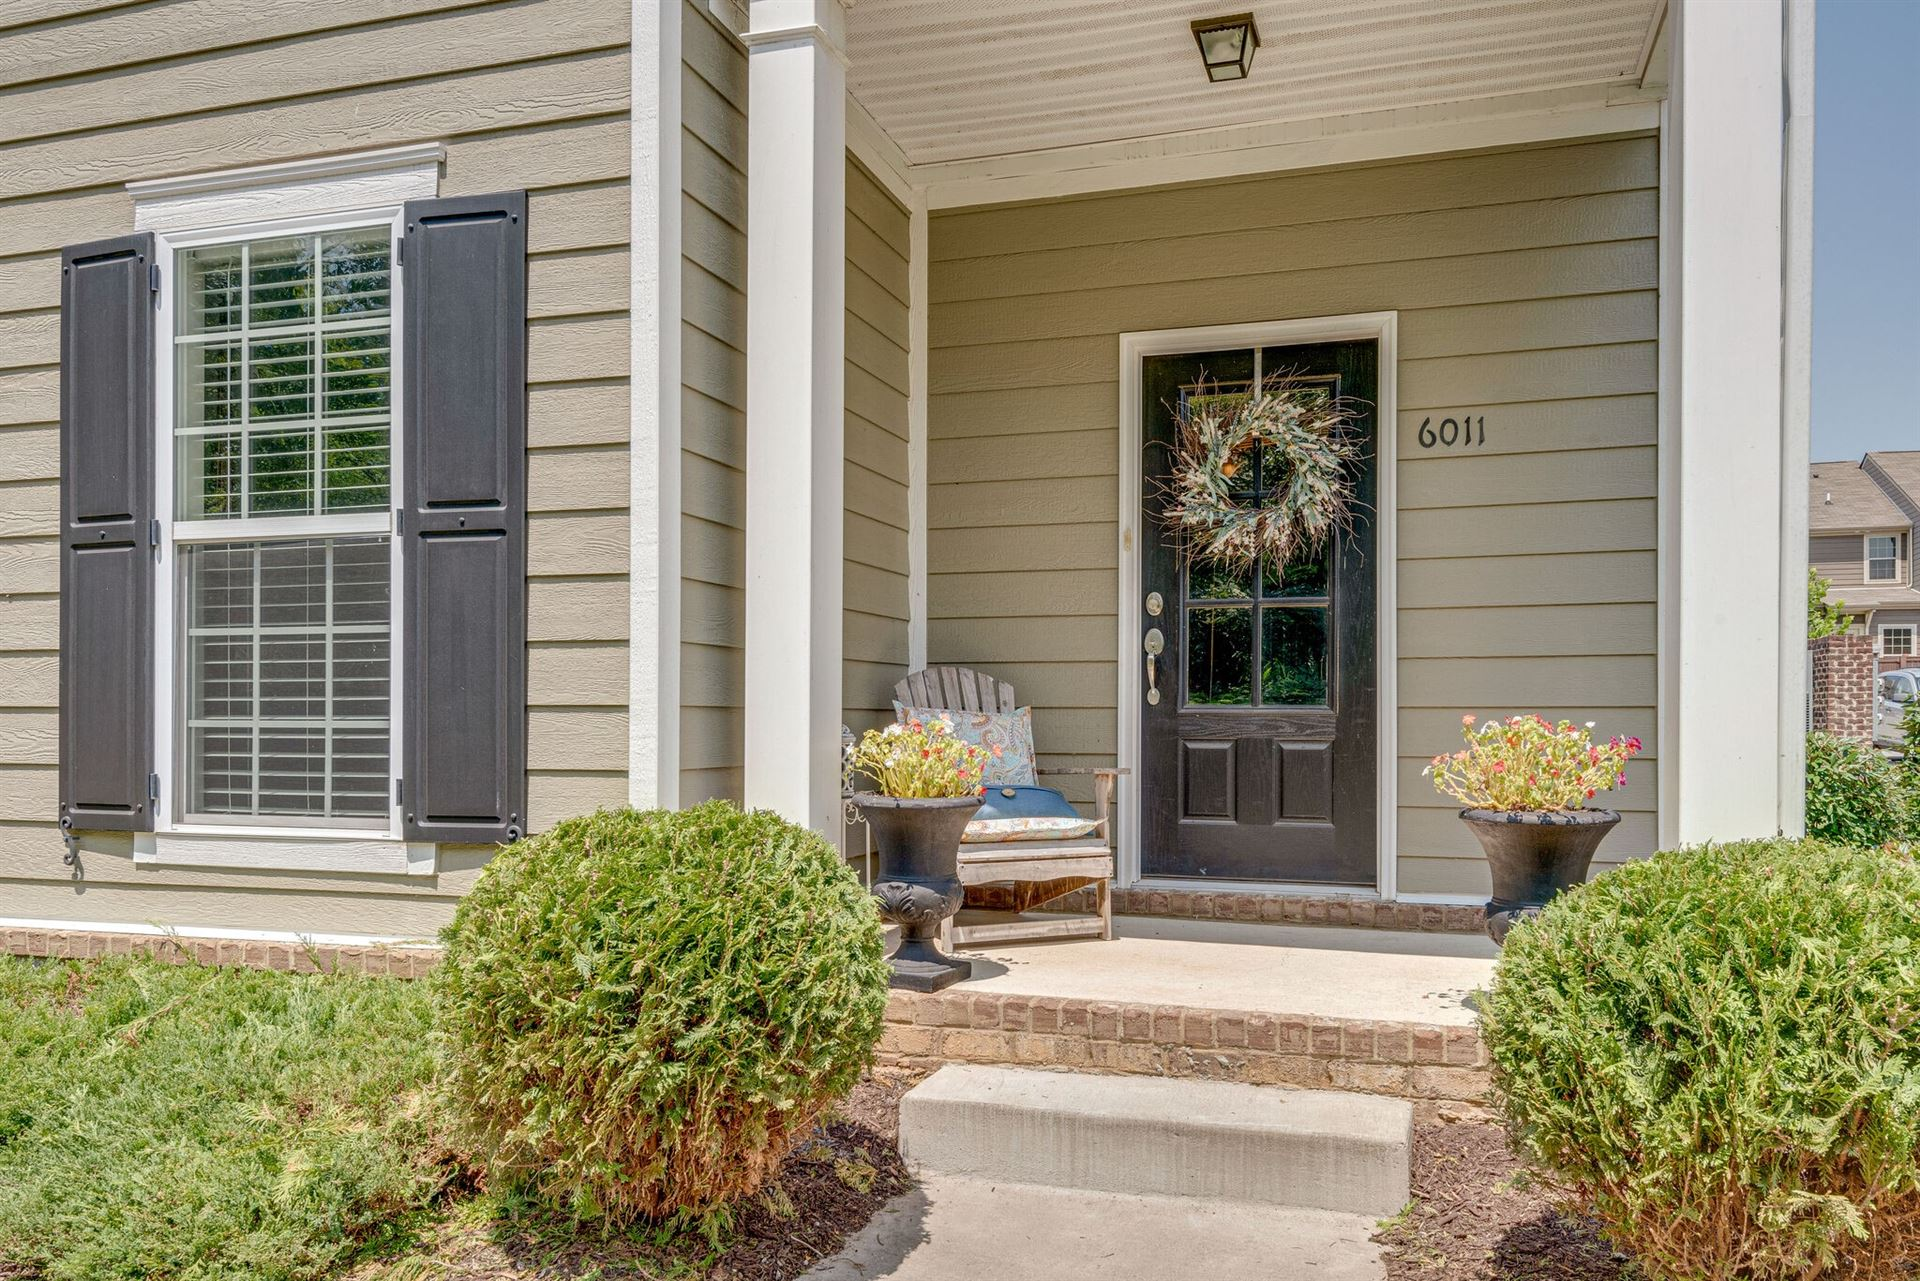 Photo of 6011 Dupont Cove #L-26, Spring Hill, TN 37174 (MLS # 2178397)